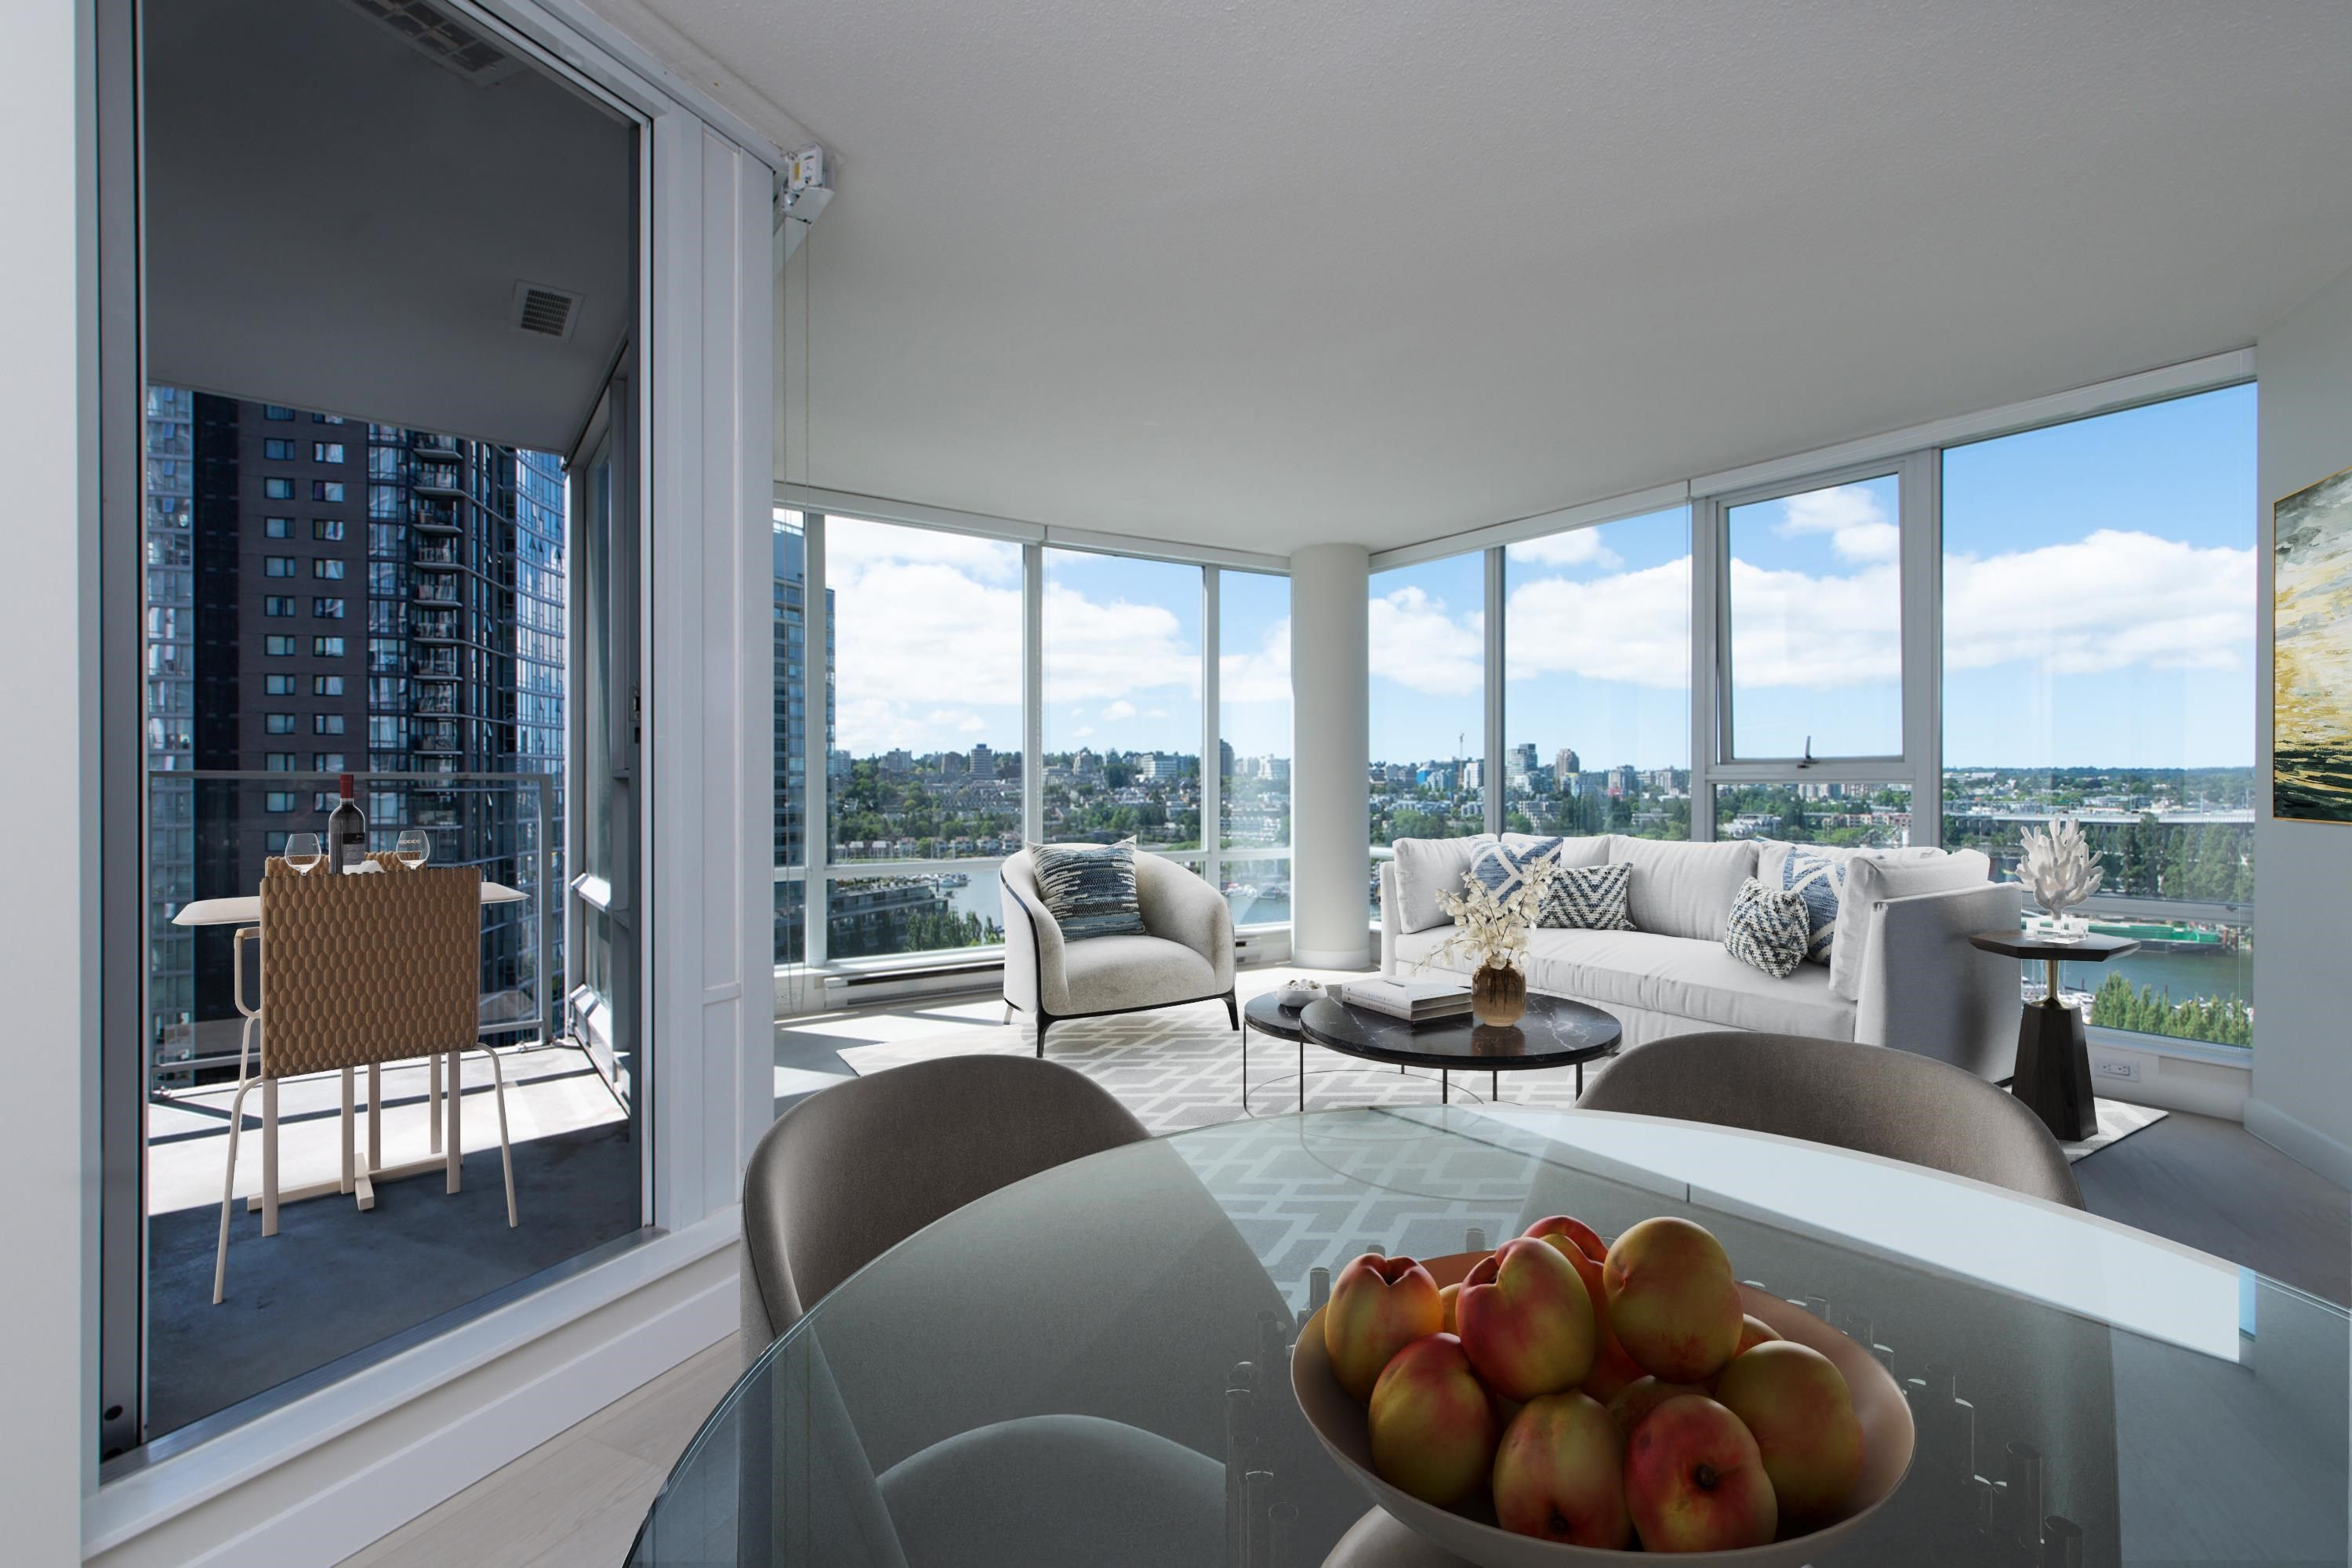 Main Photo: 1603 1495 RICHARDS STREET in Vancouver: Yaletown Condo for sale (Vancouver West)  : MLS®# R2619477